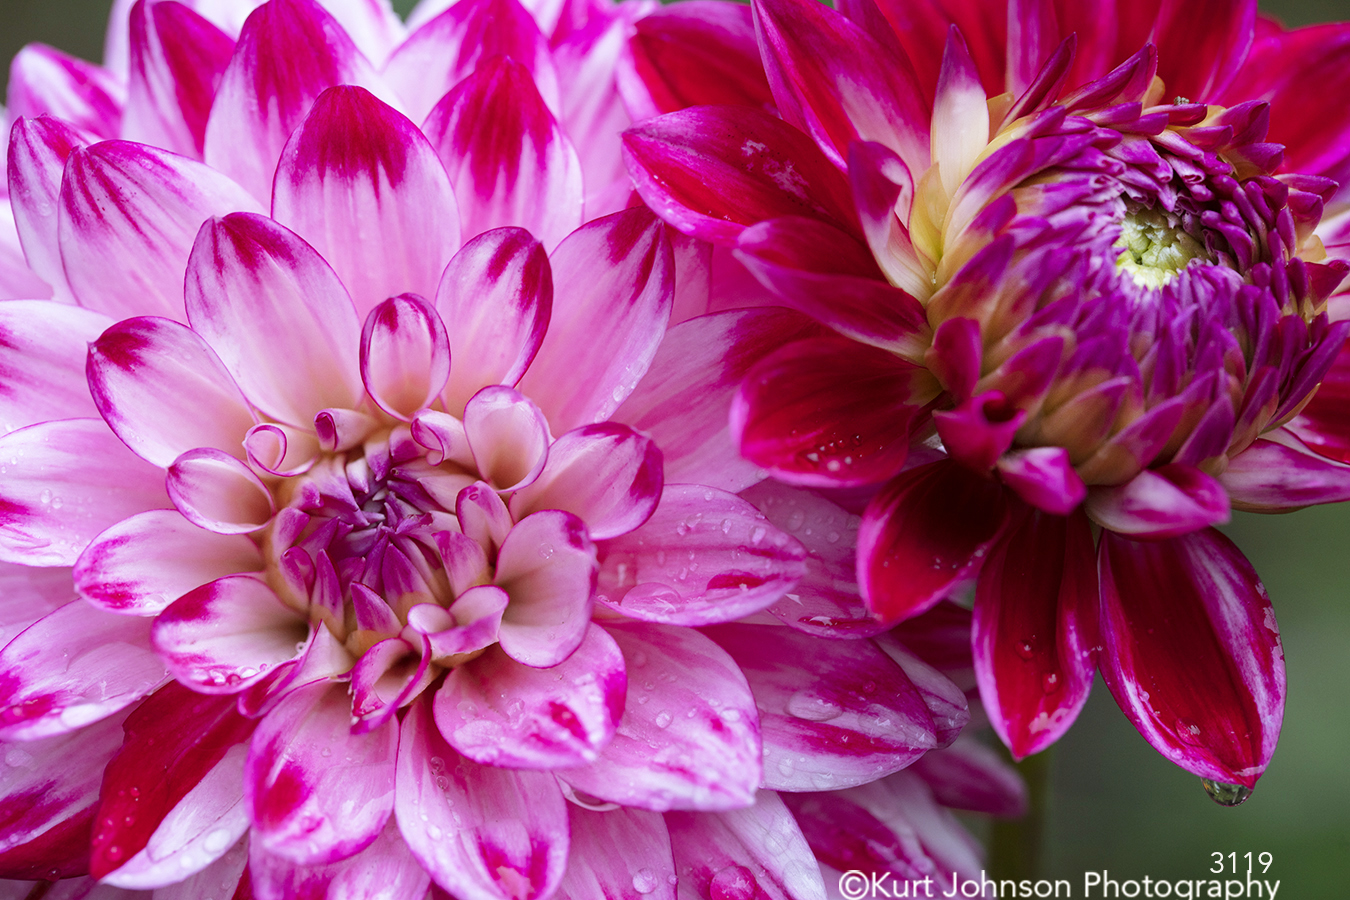 pink flowers flower petals close up detail bright happy macro colorful contemporary